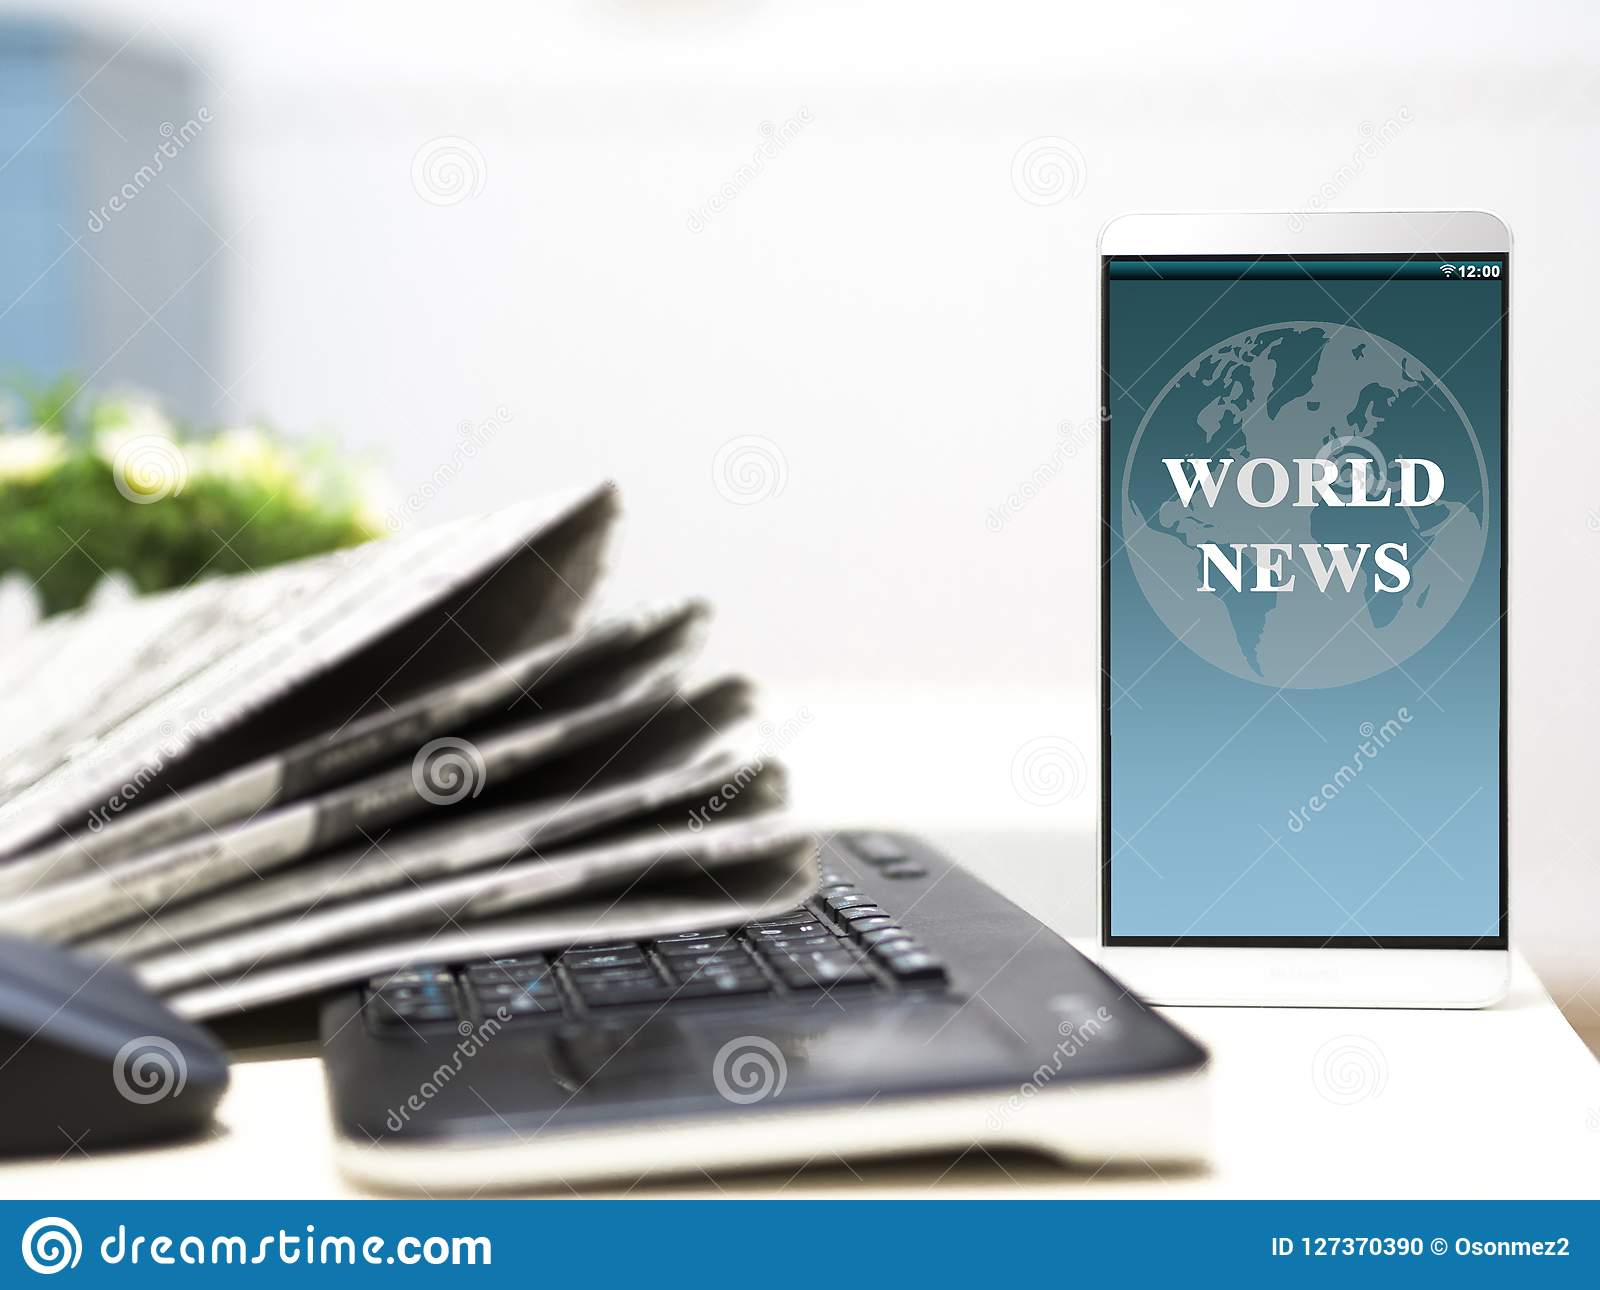 News article from the world on your smartphone screen. newspapers with keyboard on table